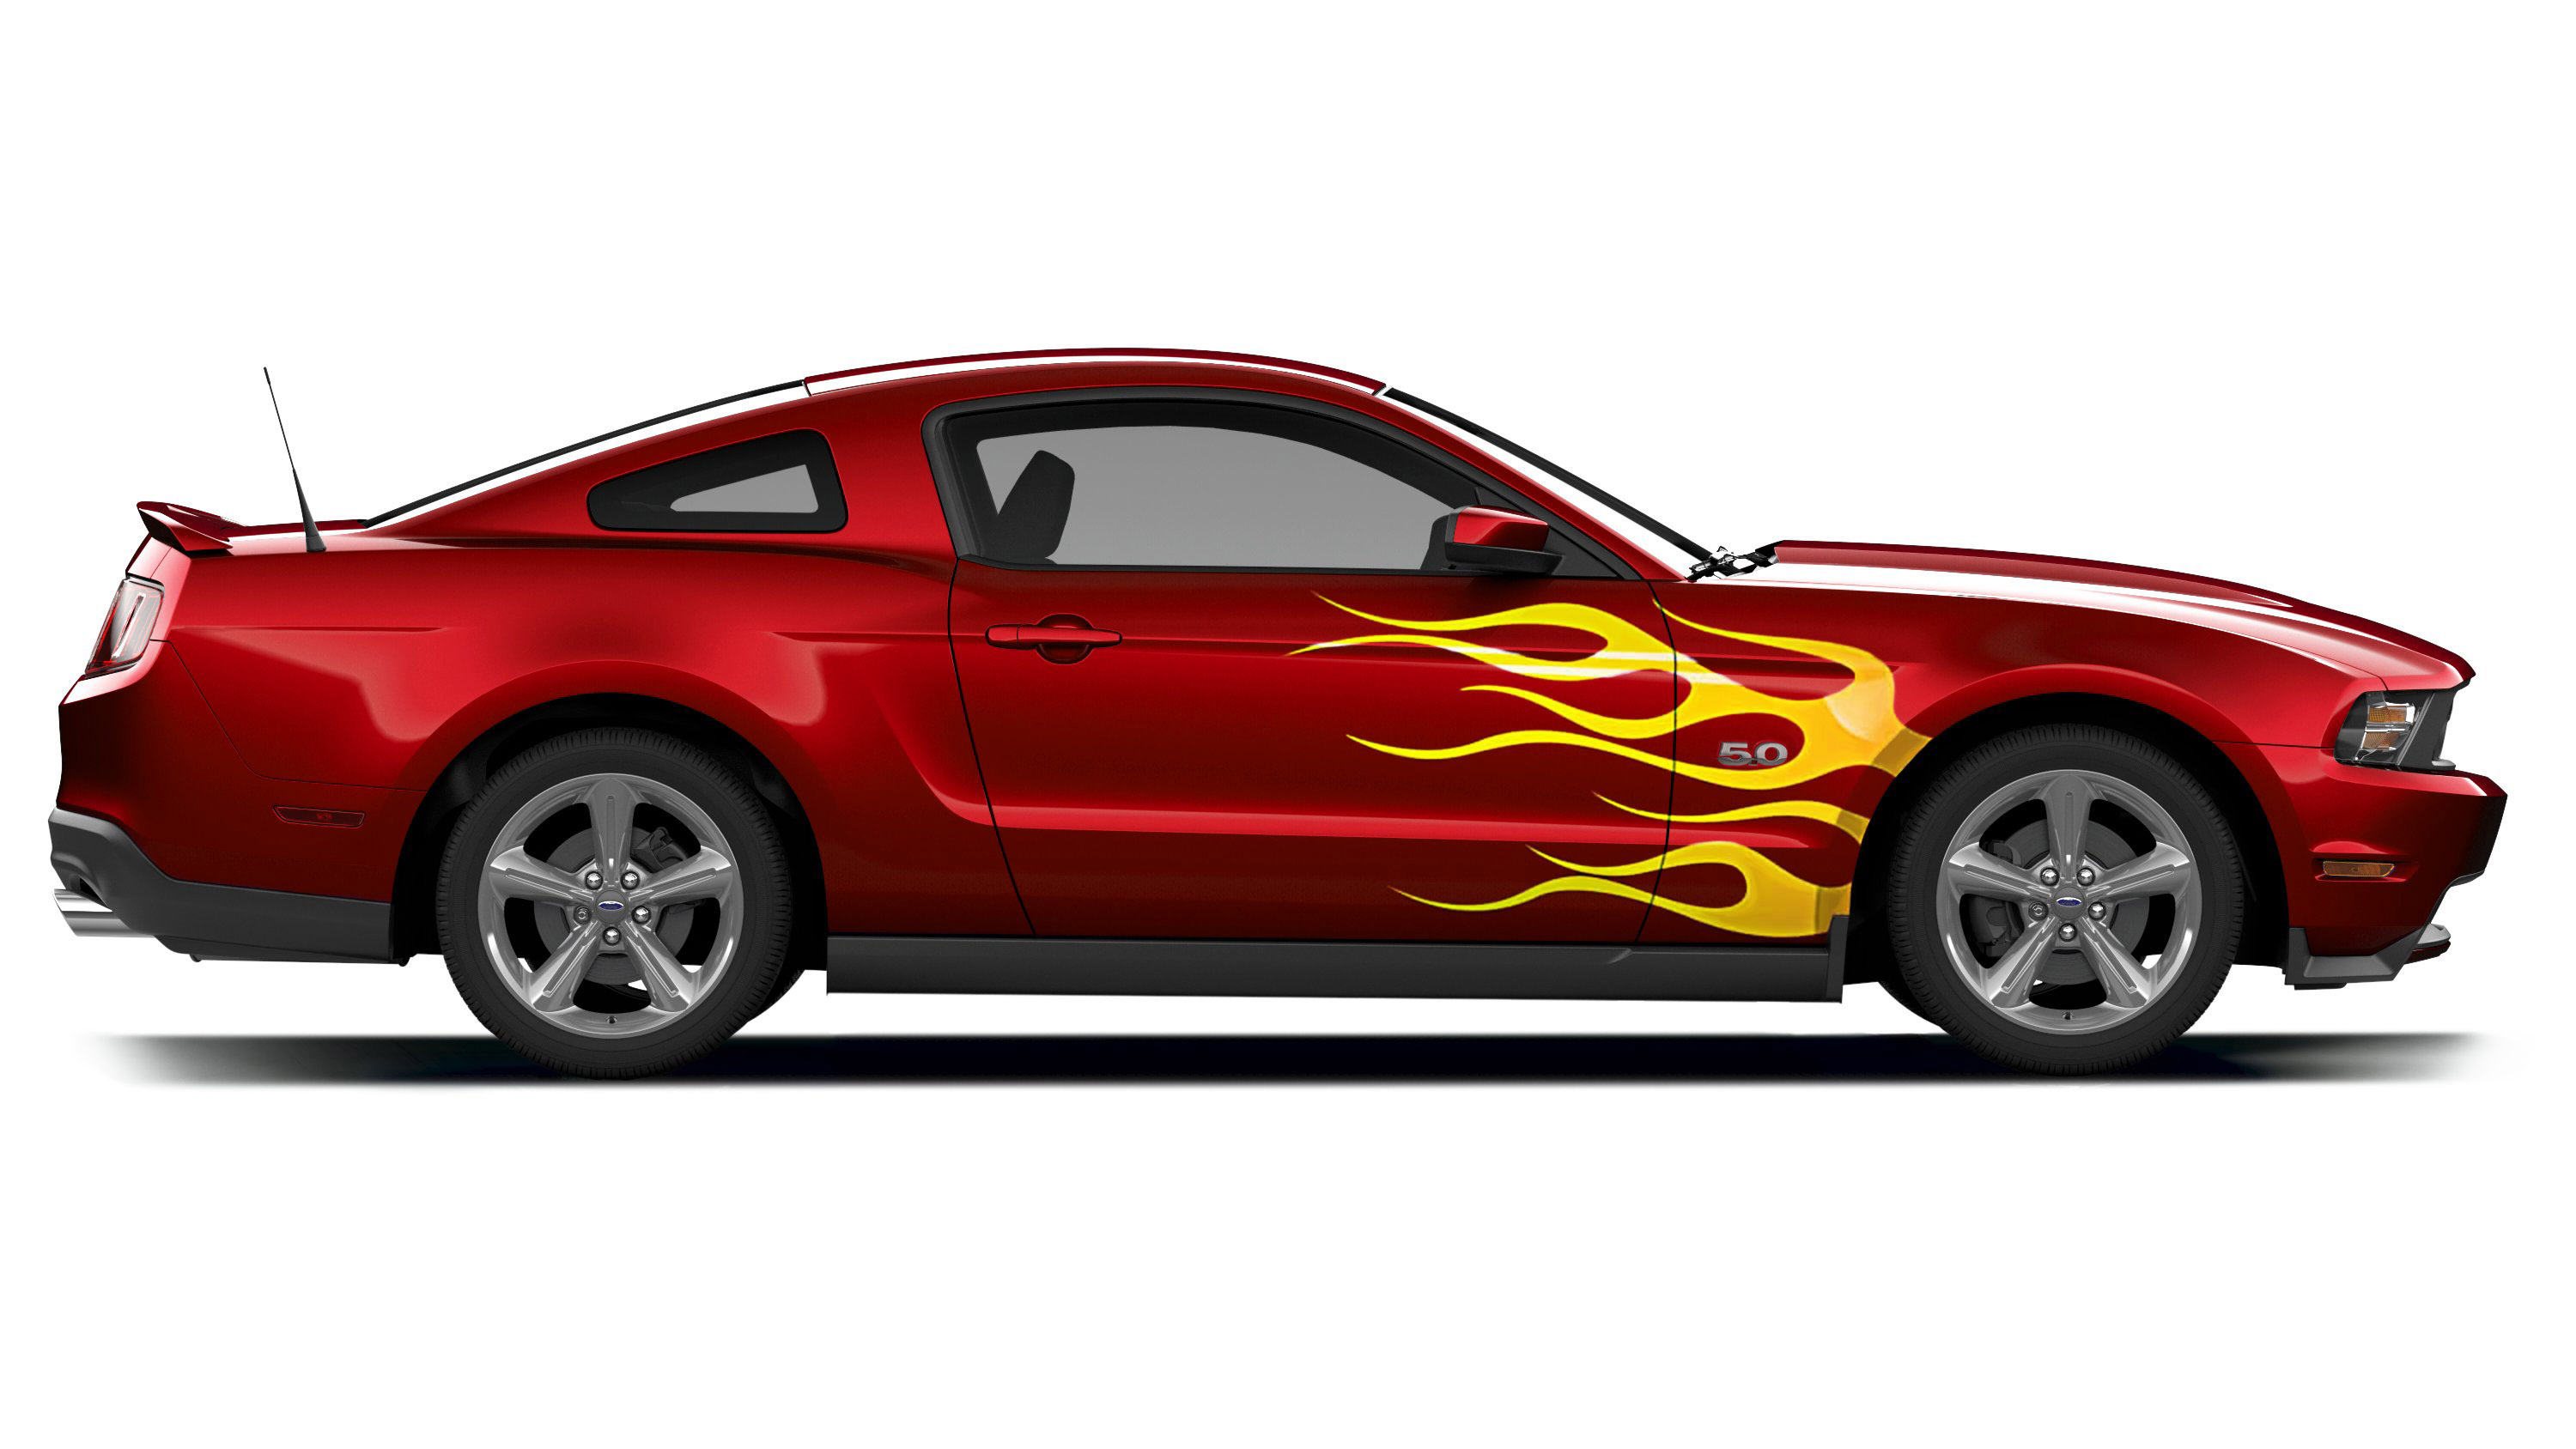 Top mustang clip art free clipart image 3